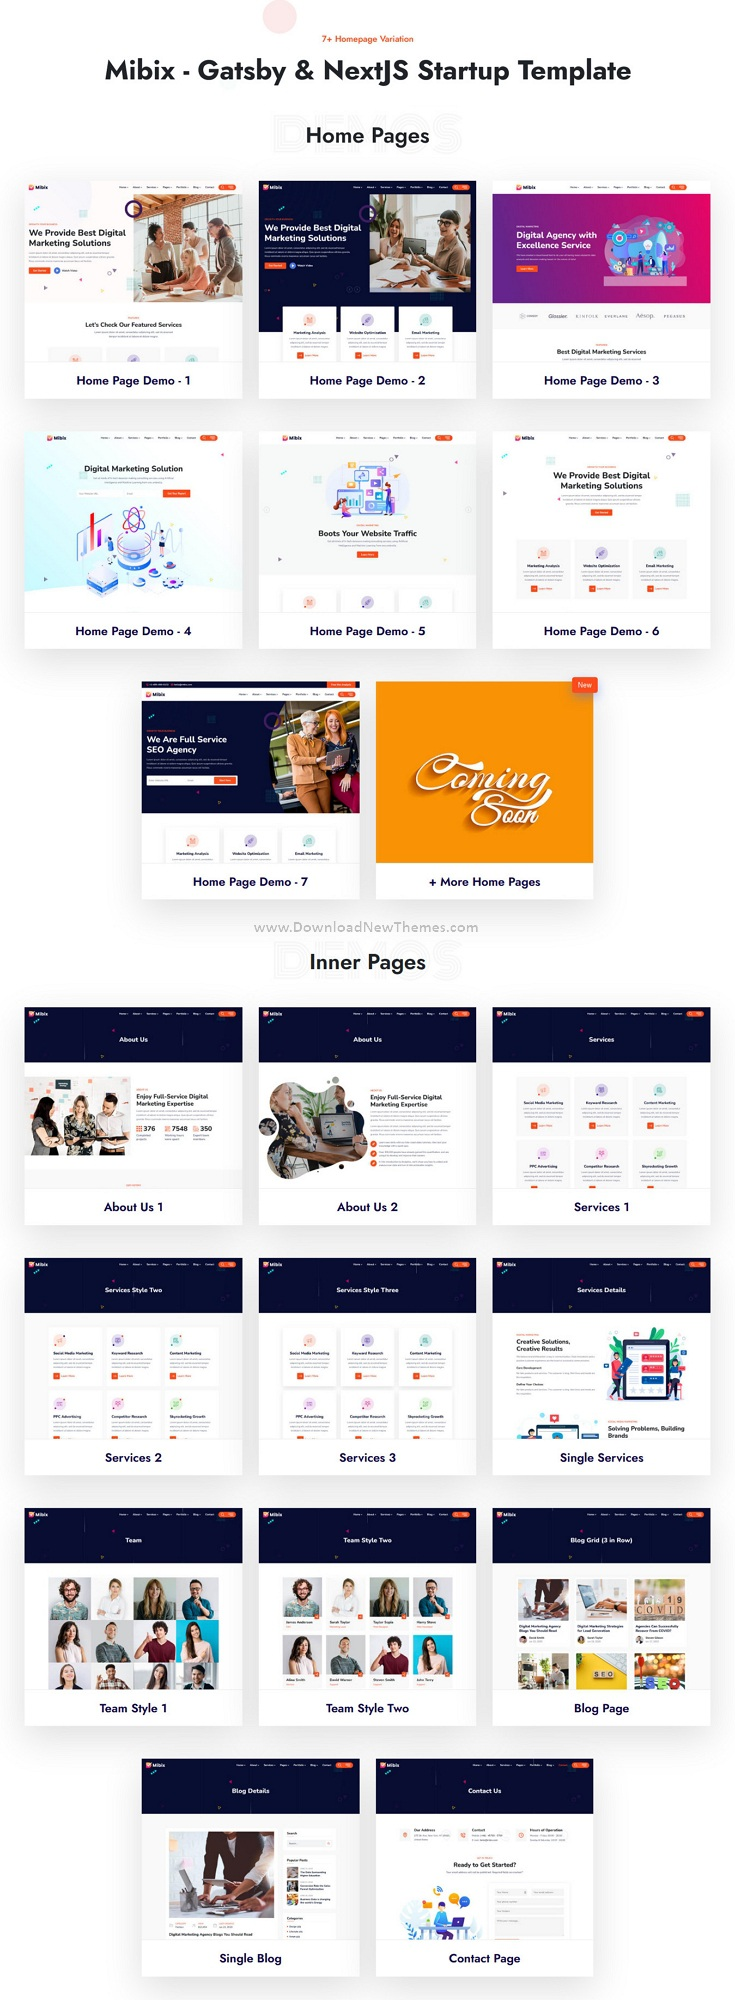 Gatsby and NextJS Startup Template